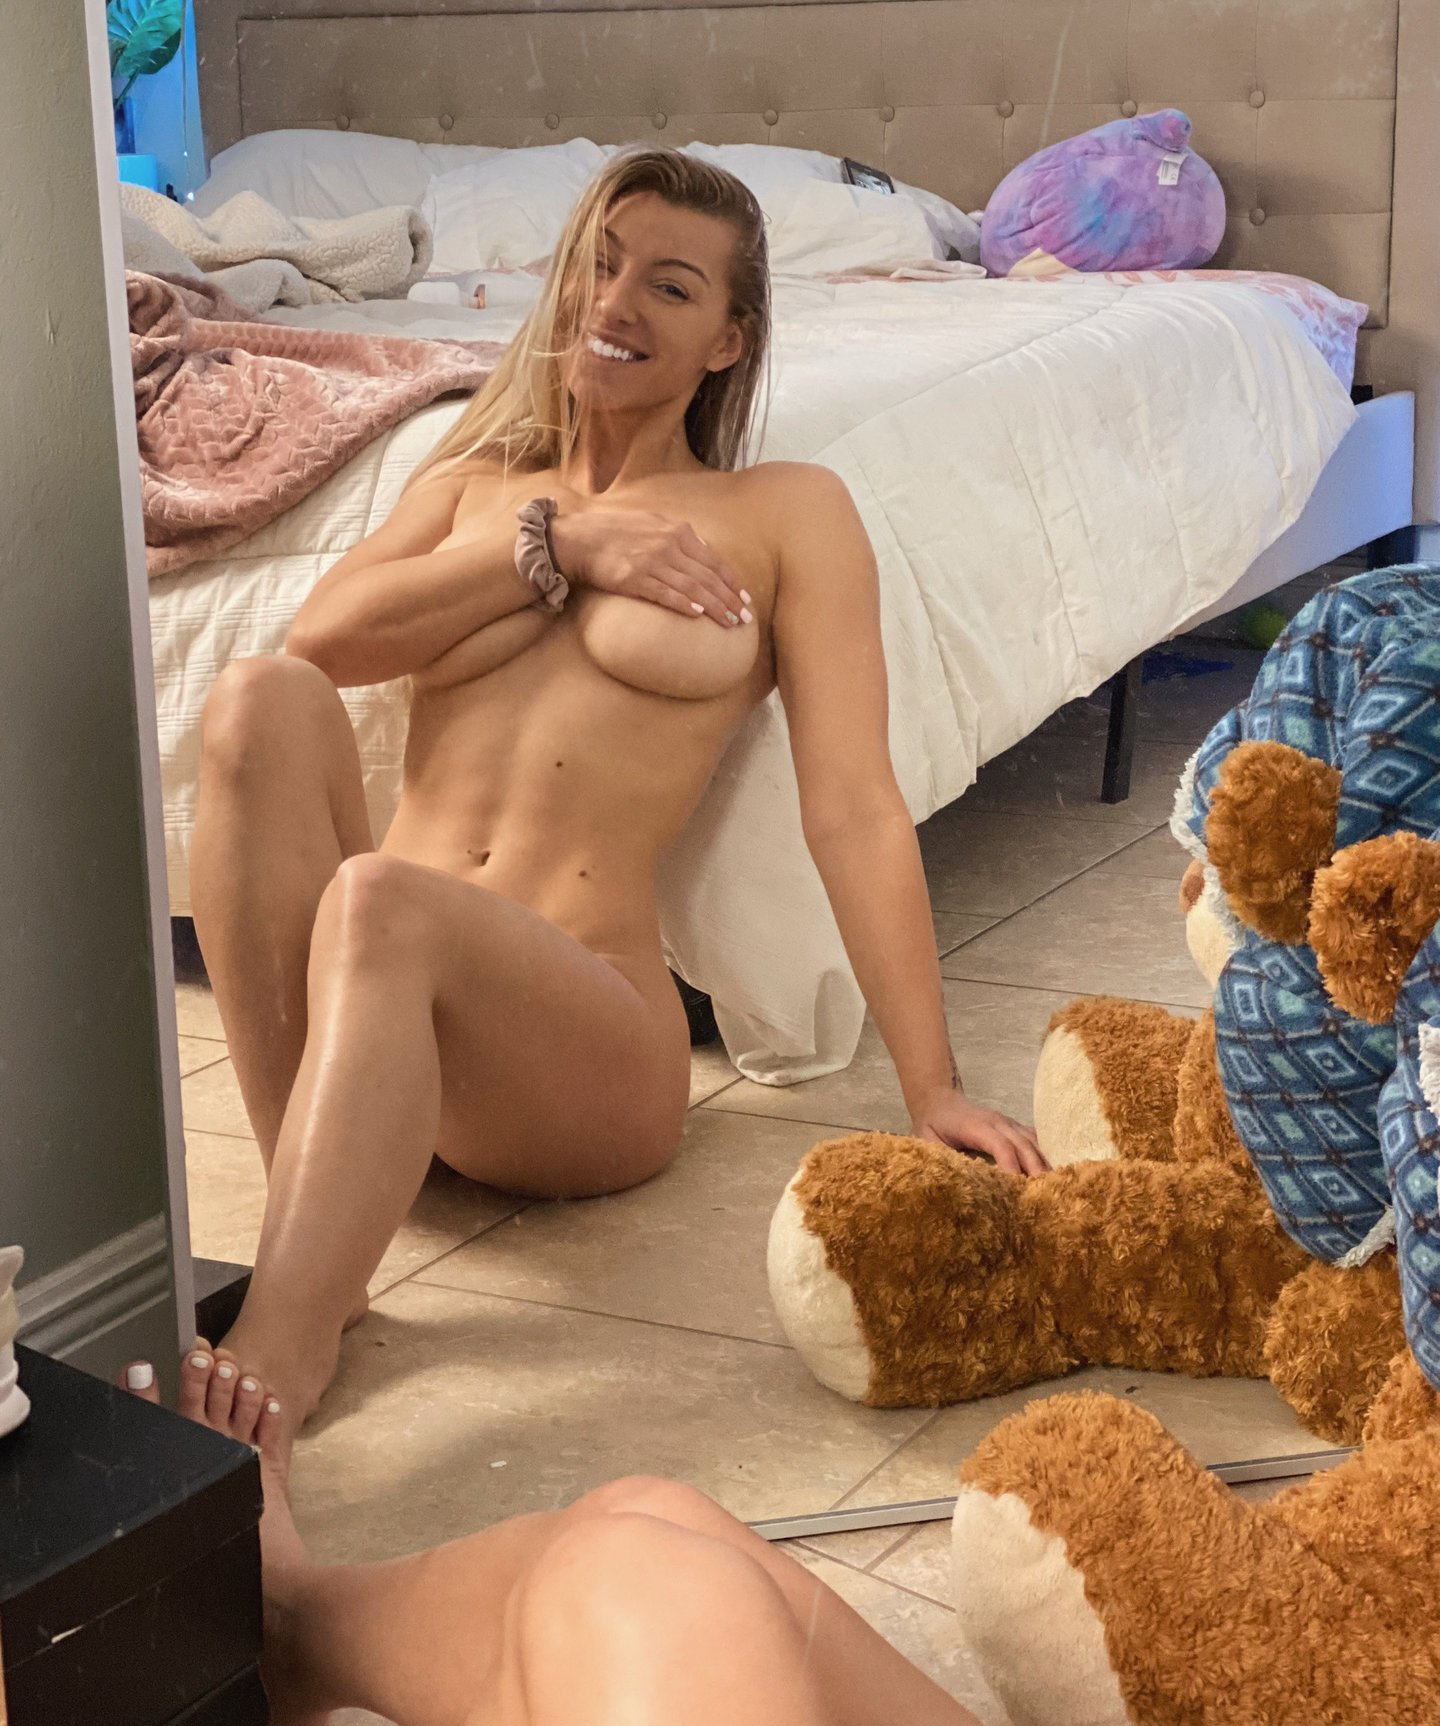 Brittney Therealbrittfit Onlyfans Nude Leaks 0030